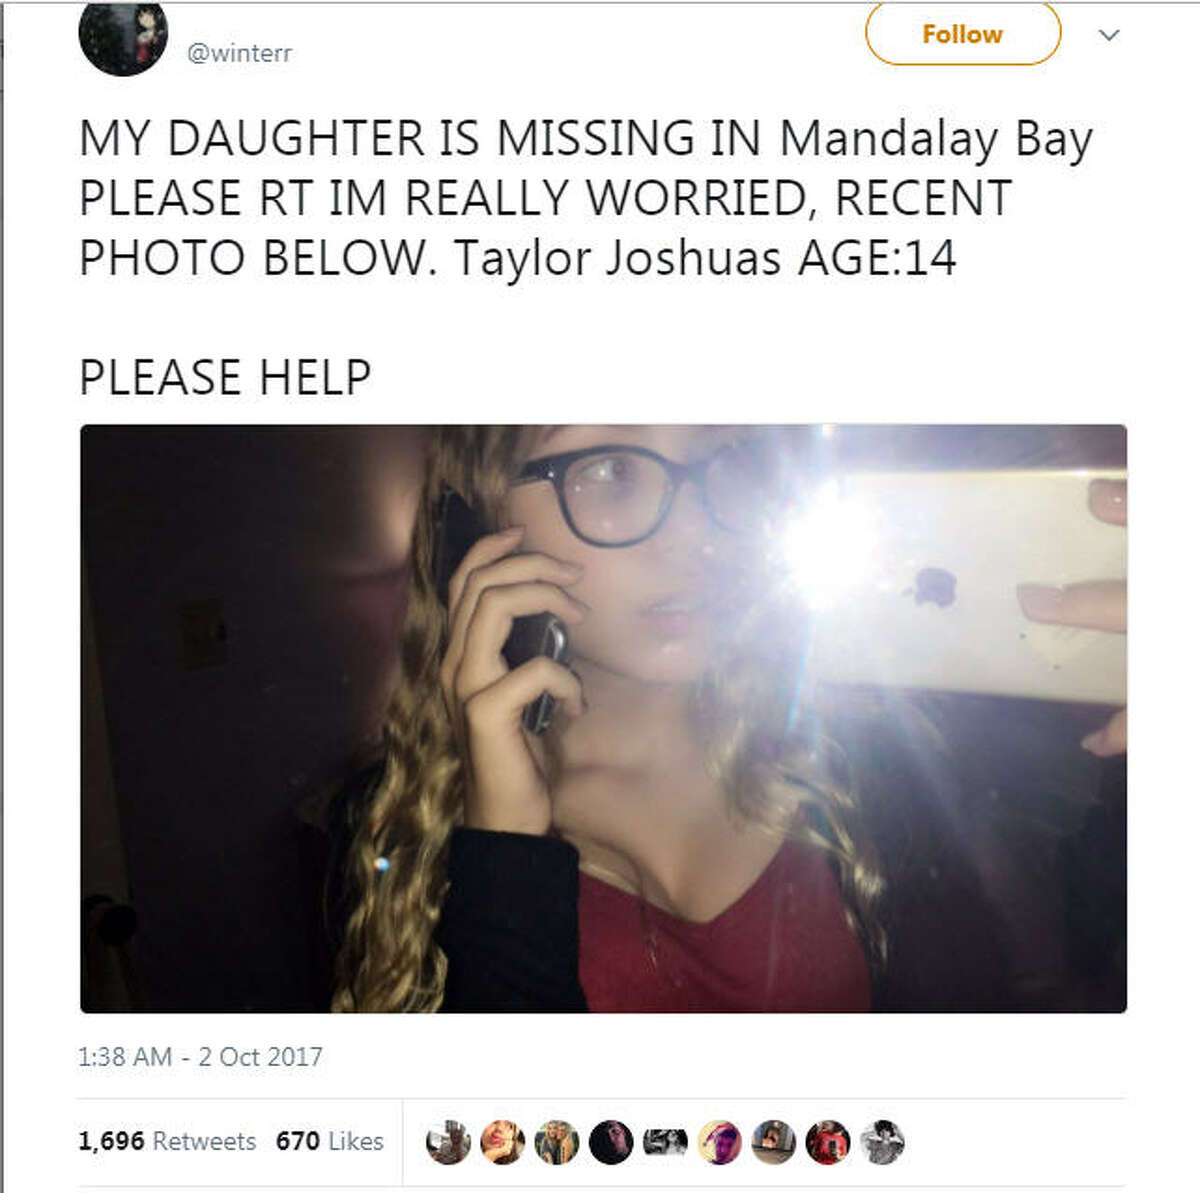 A troll account is spreading a hoax about a missing 14-year-old victim named Taylor Joshuas. The hoax was discussed in the tweet string after the photo had gone viral.